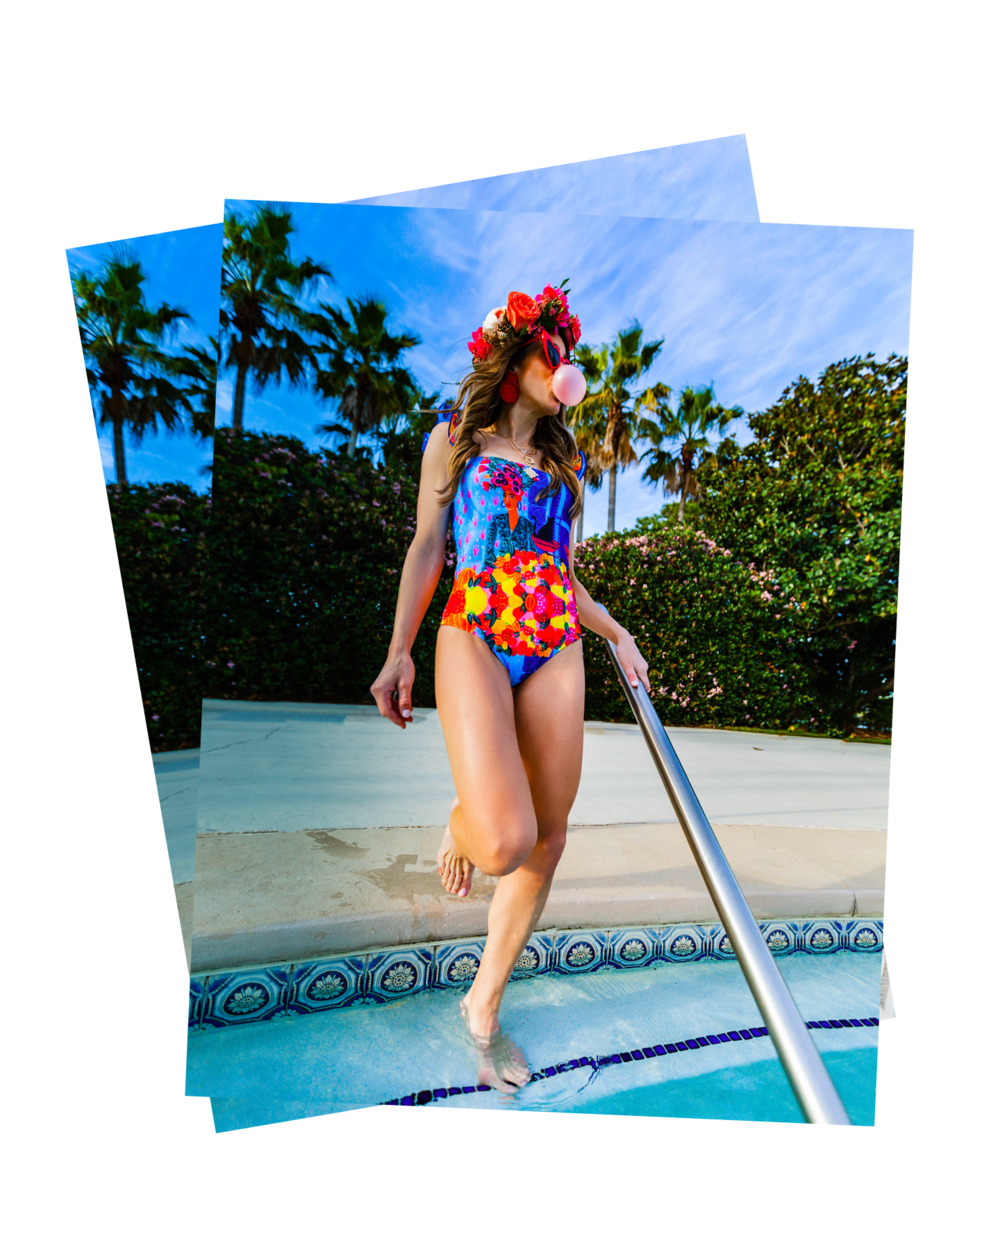 """FRIDAY FAVORITES - SWIM FAVORITES FROM SHOPBOP - With Spring Break in the midst and Summer fast approaching, let's get your pool game poppin' with these top swimsuits picks from Shopbop! I love getting swimsuits that are different and unique. Shopbop is such a great source for me to find styles that are a step up from those BASIC """"mom suits"""" you see all Summer at the pool! When I saw this swim suit from Carolina K, I just had to have it! I love Frida and it reminds me of her mixed with the lady with the fruit on her head…..you know, the one Carmen Miranda played in Copacabana! I've always wanted to……"""